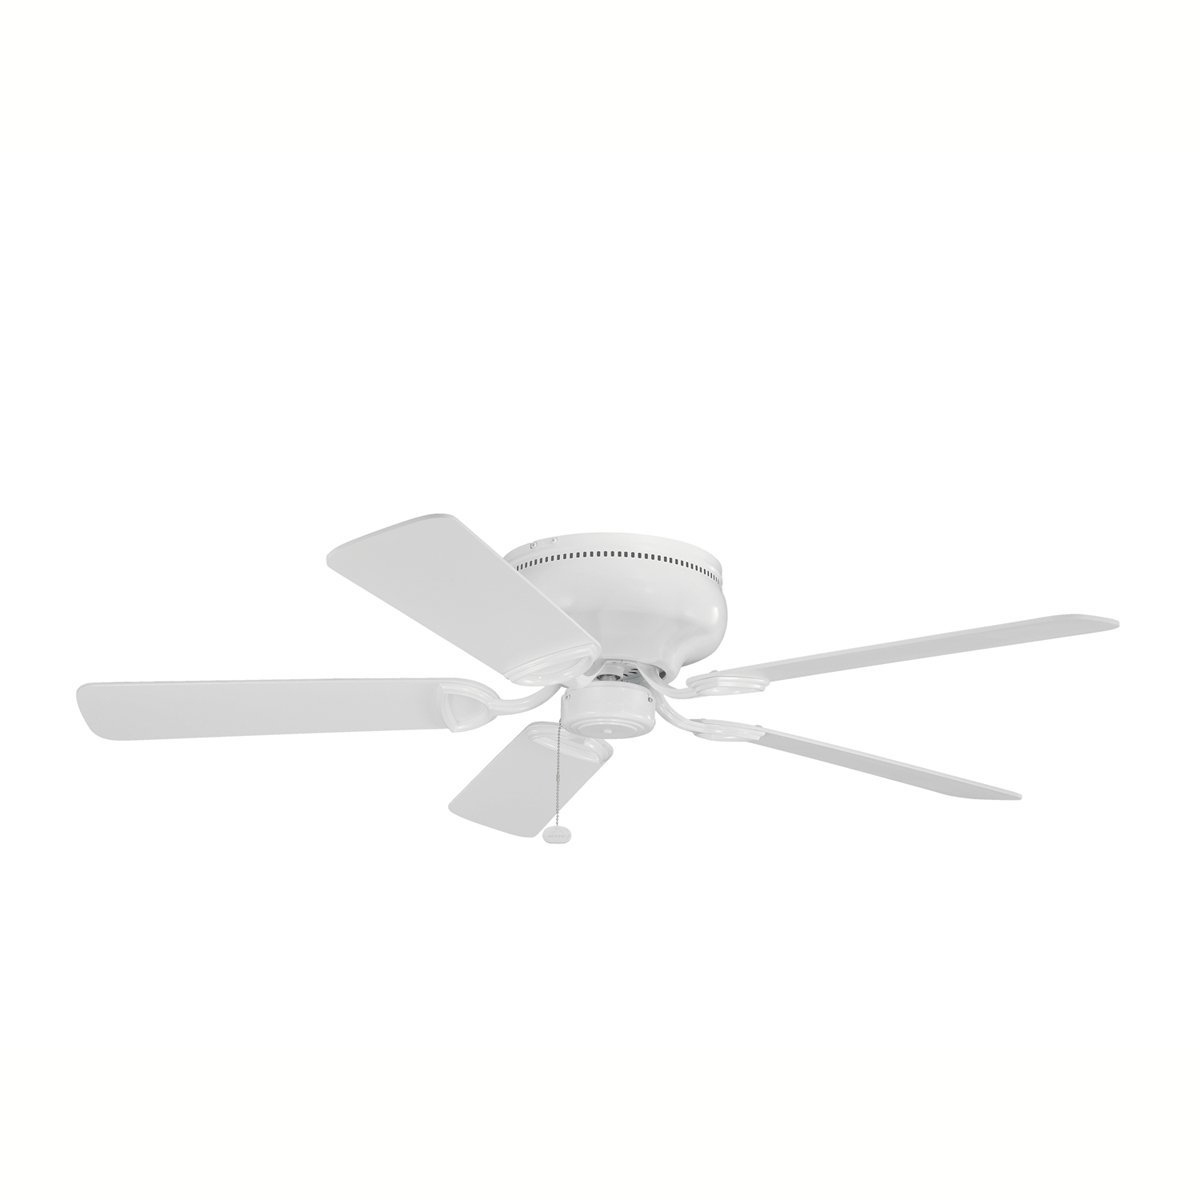 2019 Outdoor Ceiling Fans Flush Mount With Light Intended For Flush Mount Ceiling Fans Without Lights Big Outdoor Ceiling Fan With (View 2 of 20)